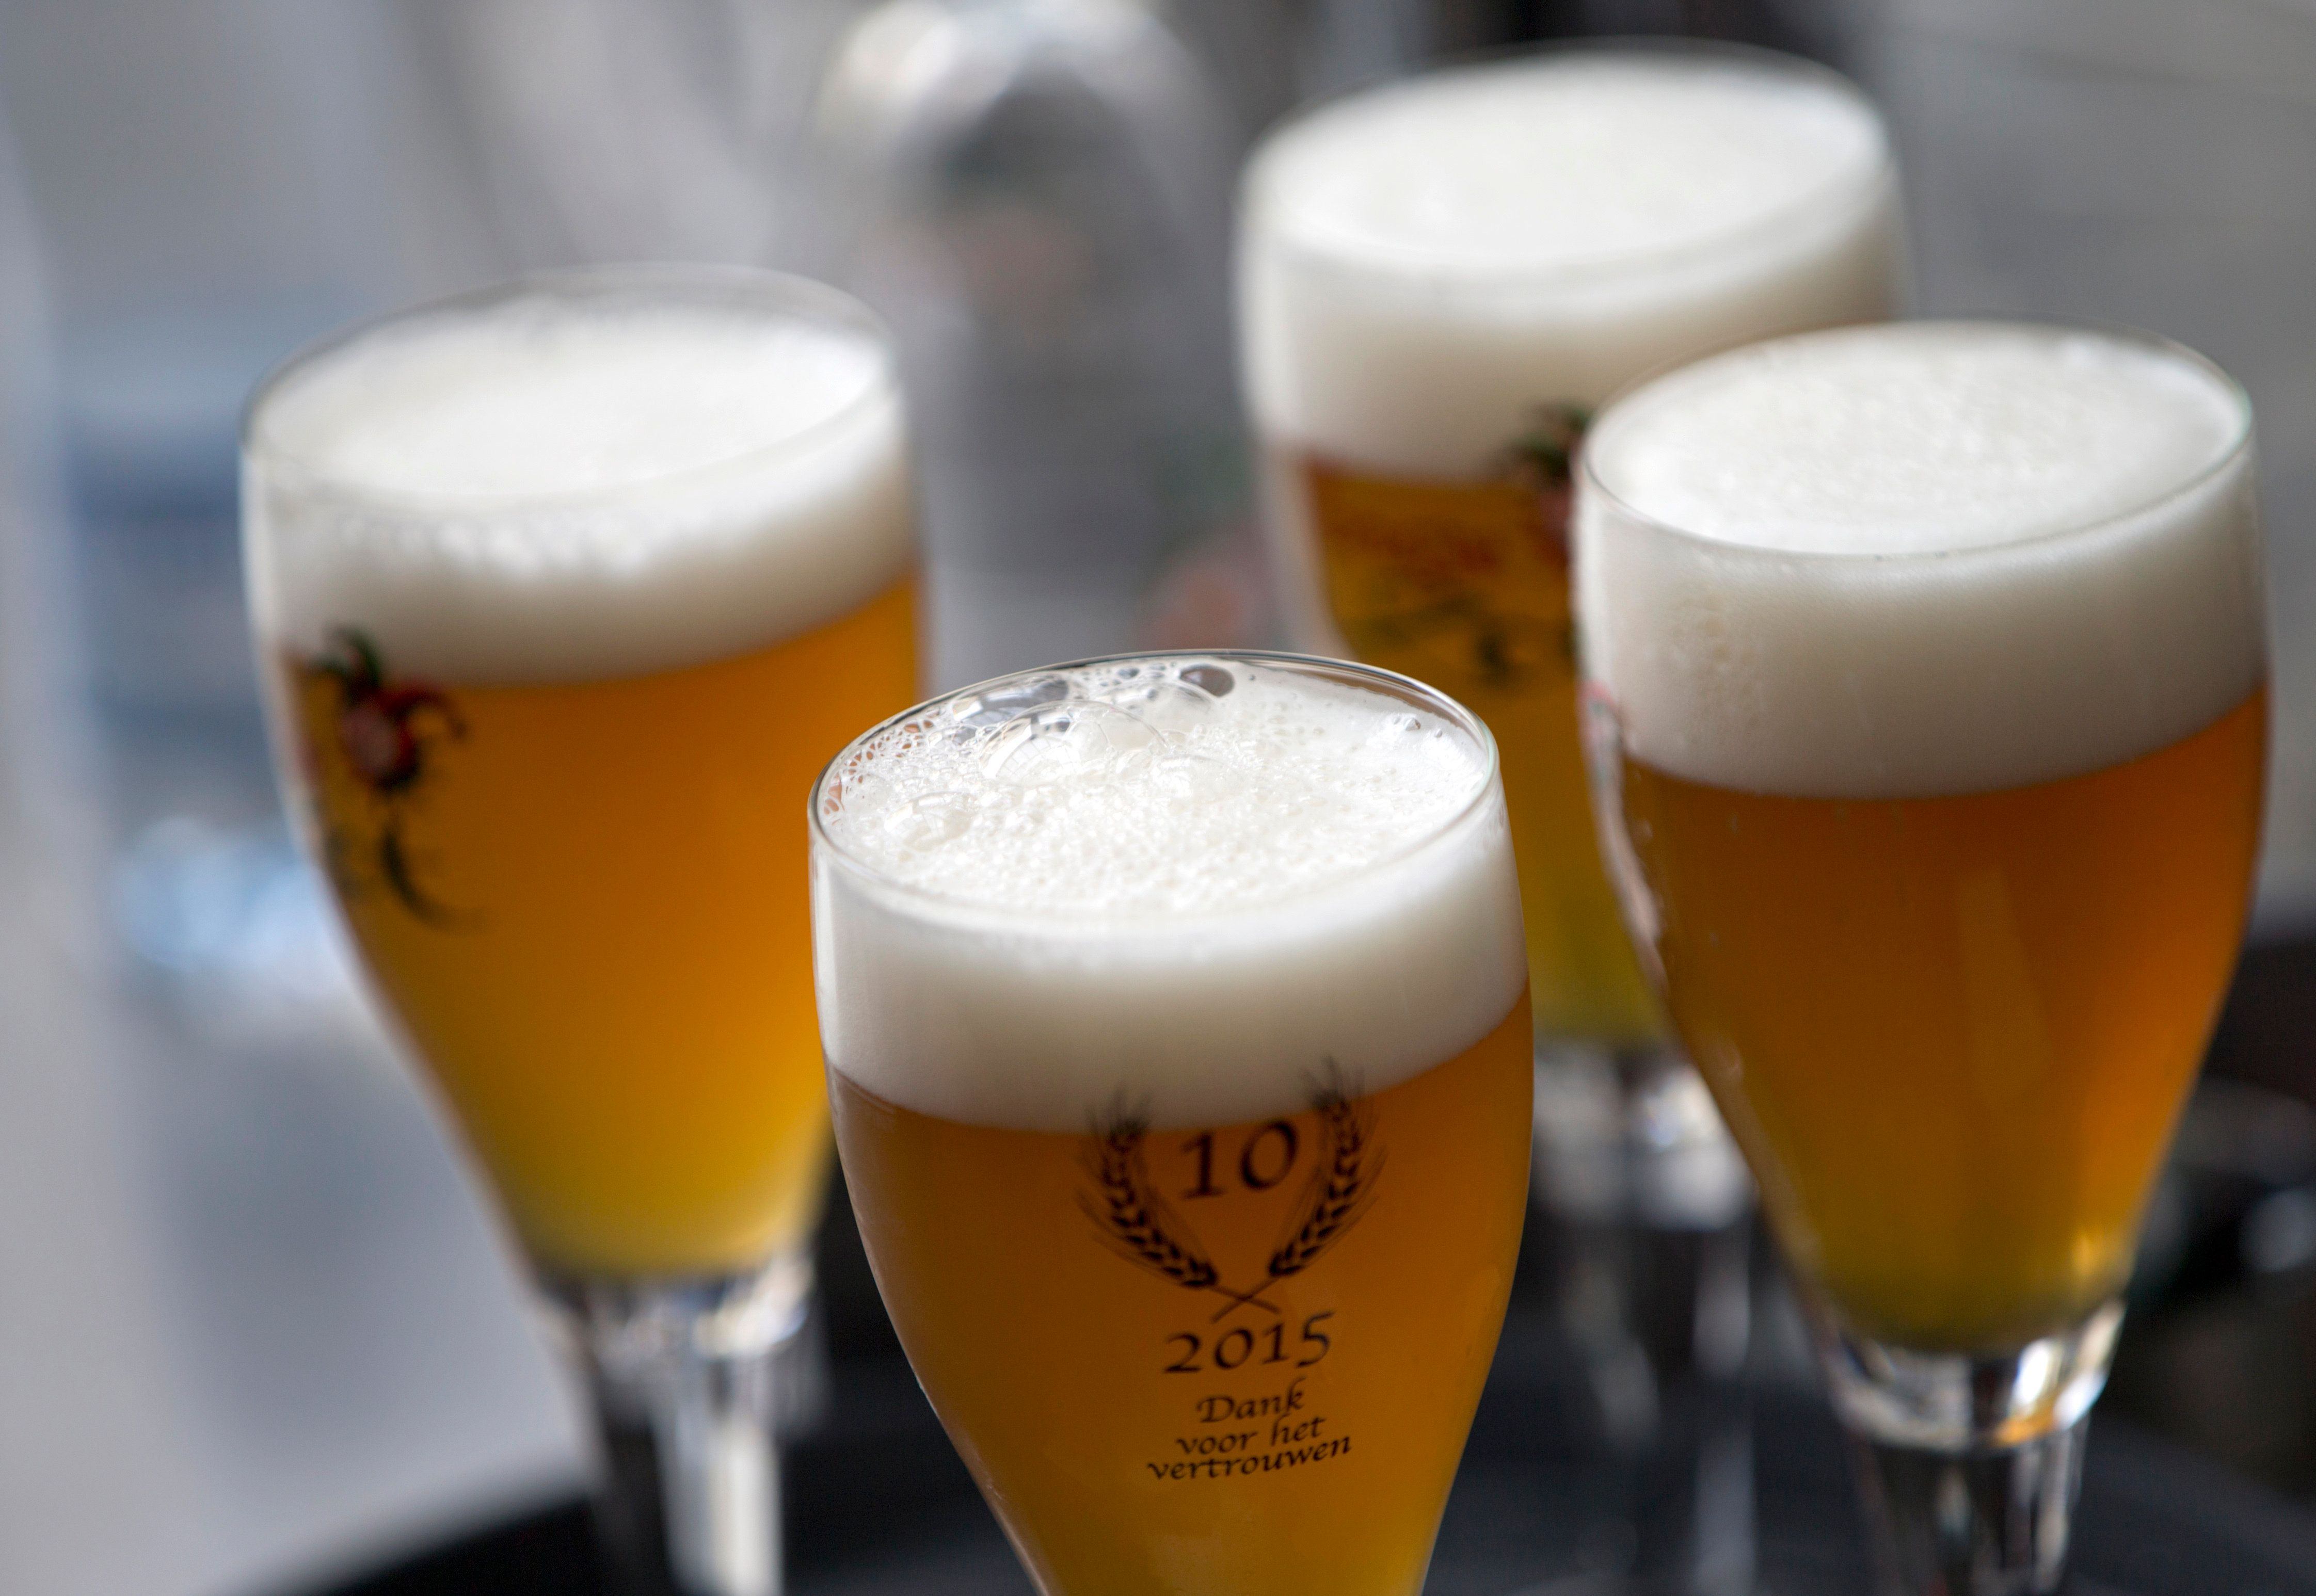 Carlsberg, United Breweries Accused Of Colluding to Fix Beer Prices in India: